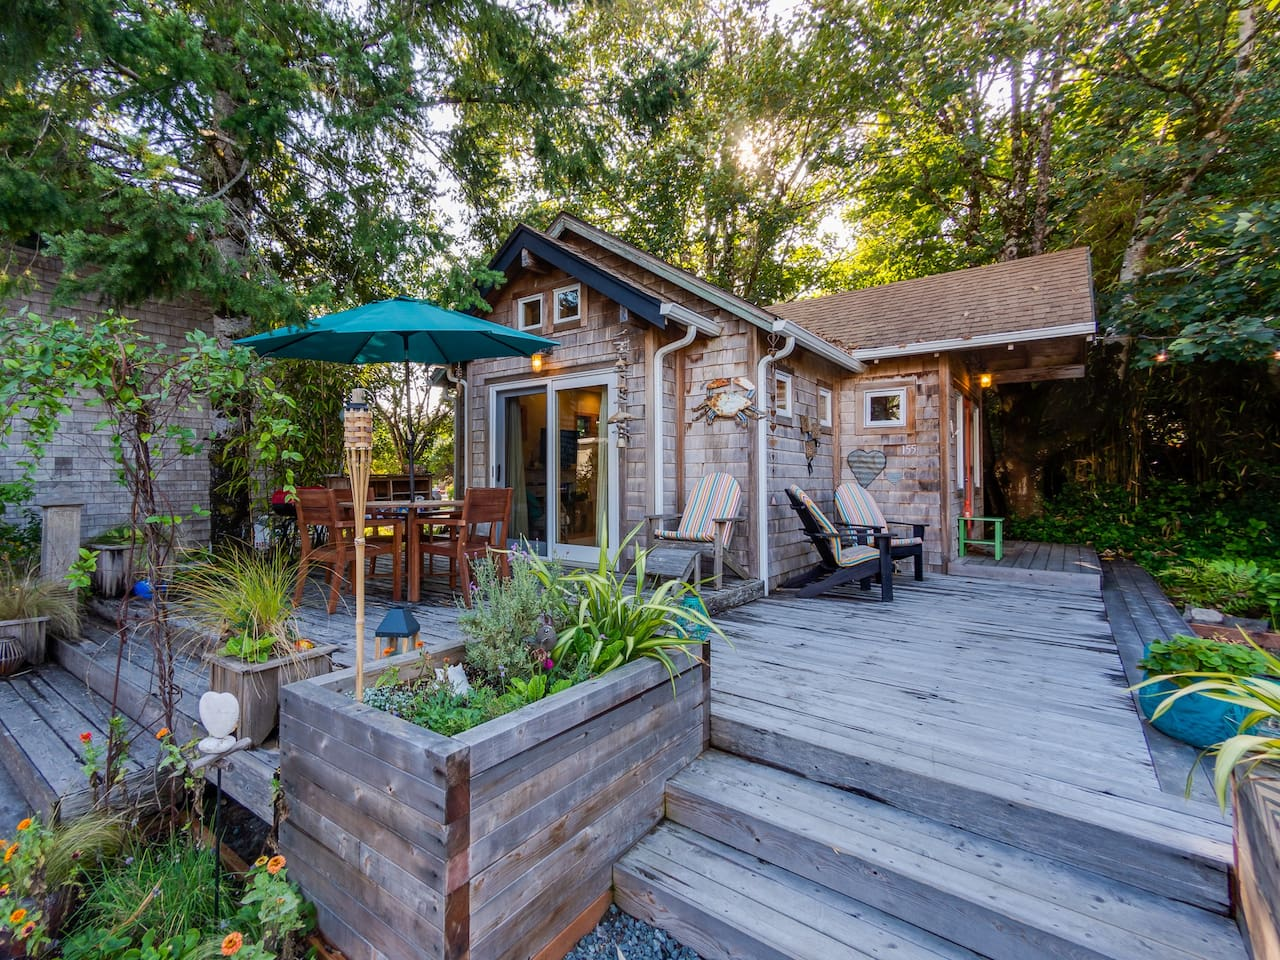 Front patio of Lil Love Shack with charcoal BBQ, table with umbrella and seating for four plus three other chairs and lounge chair, fire pit, picnic table with benches, and bench seat